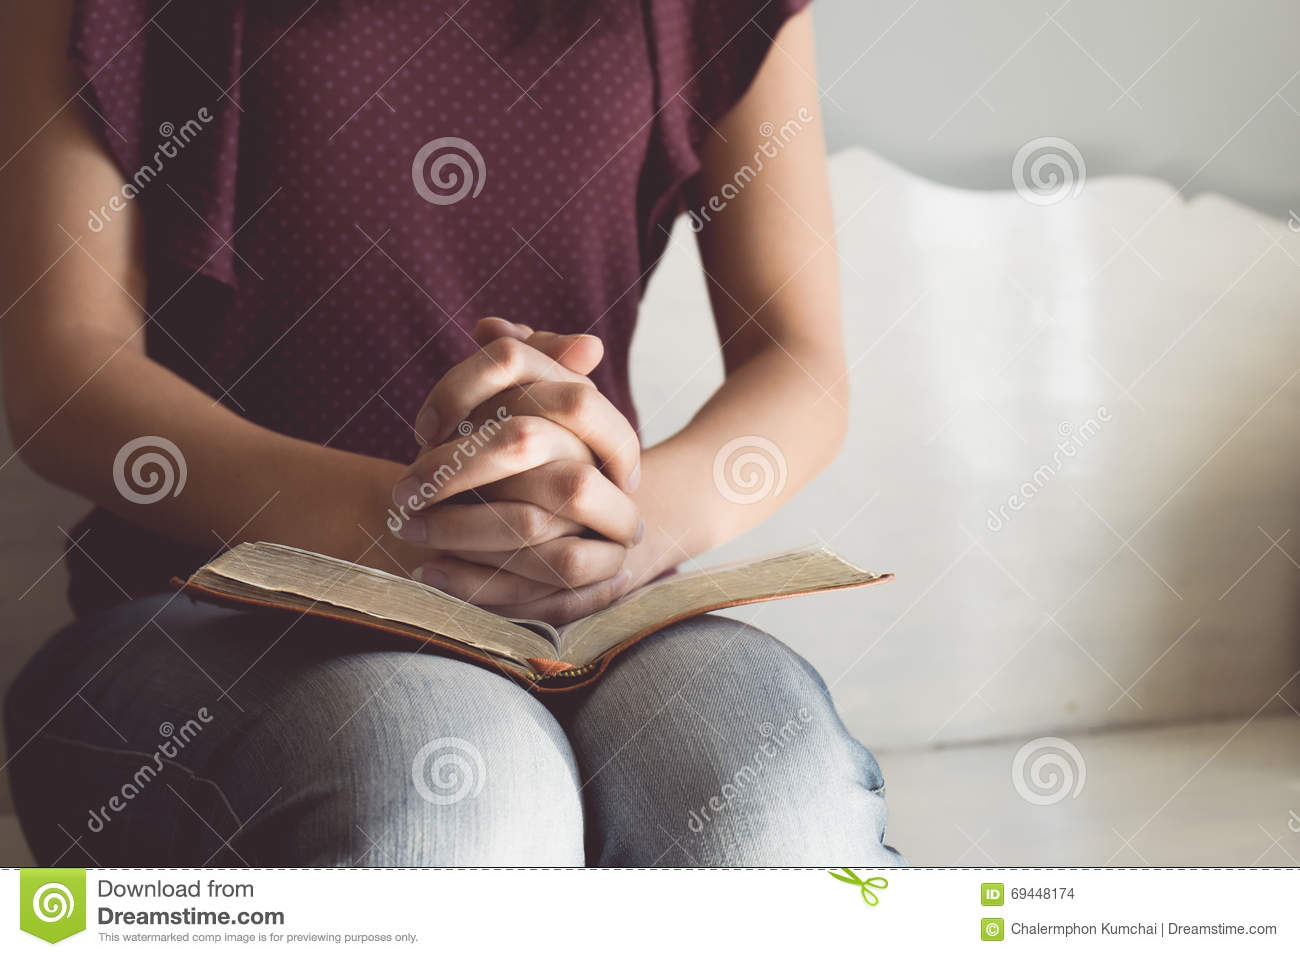 Vintage tone of woman hands on bible. she is reading and praying